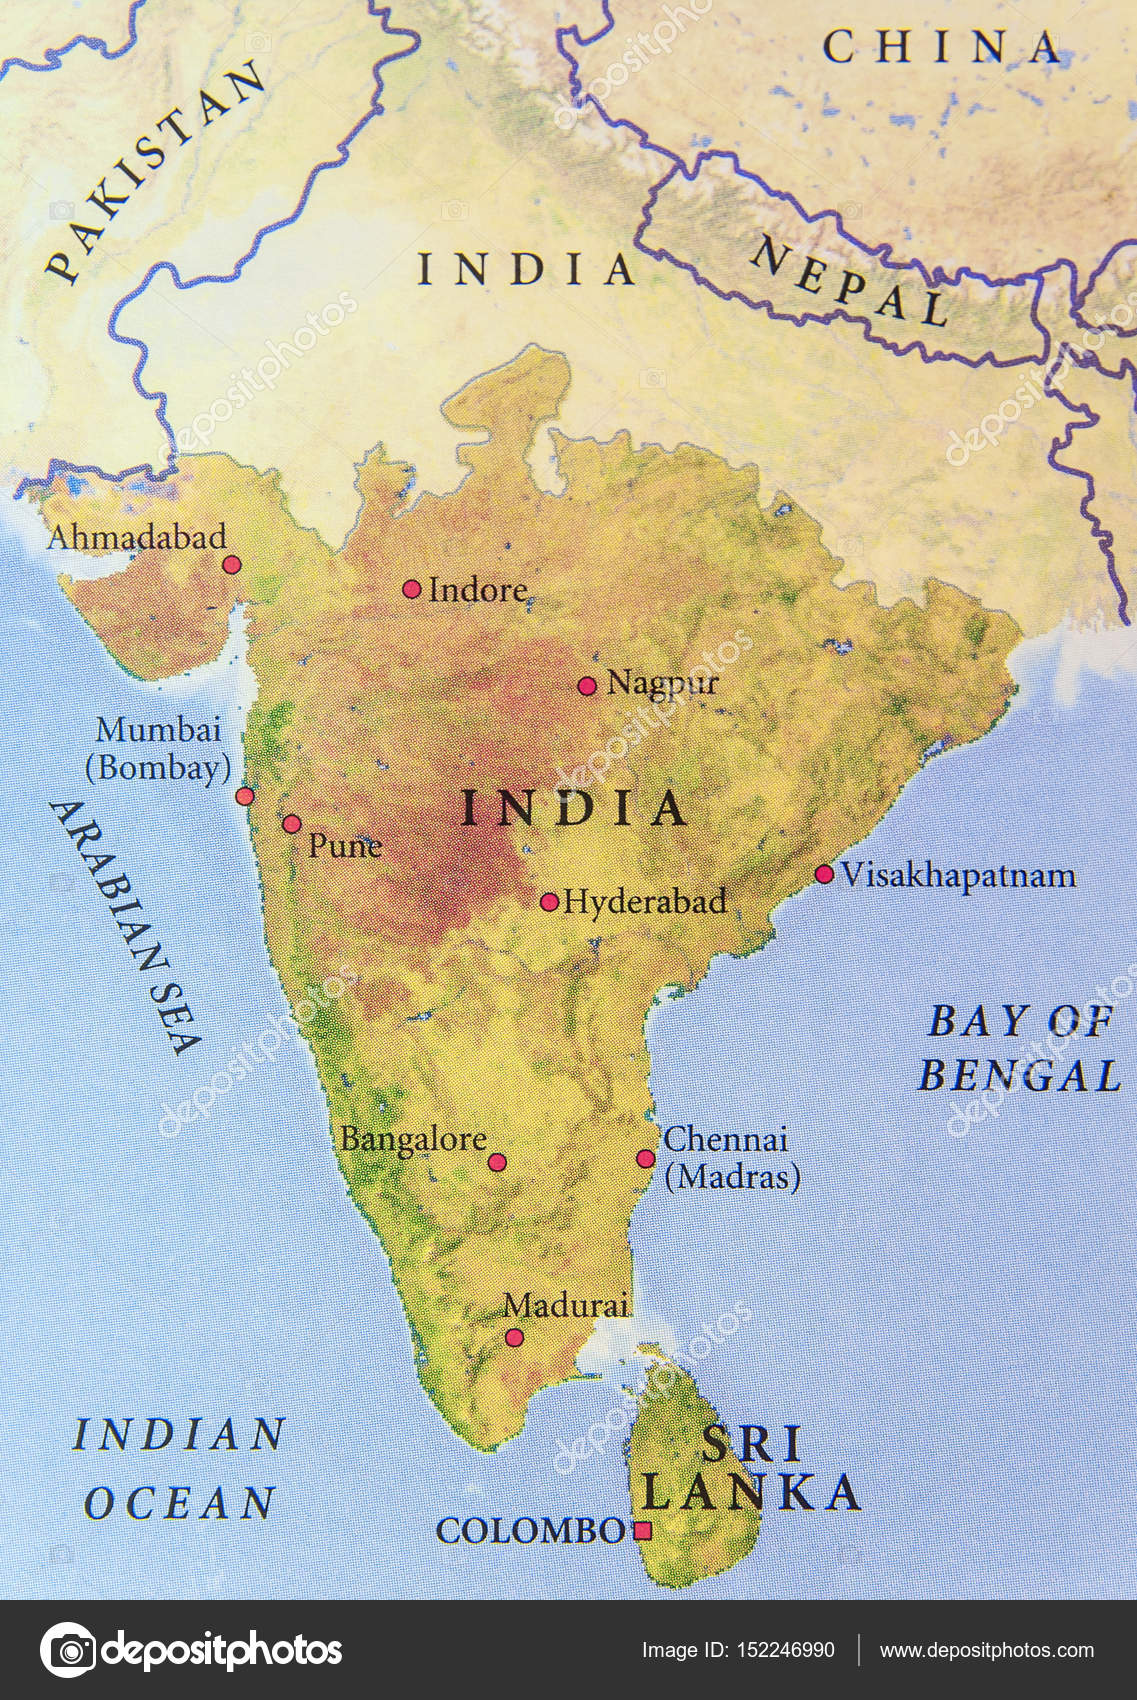 Map Of India Geographic.Geographic Map Of India With Important Cities Stock Photo